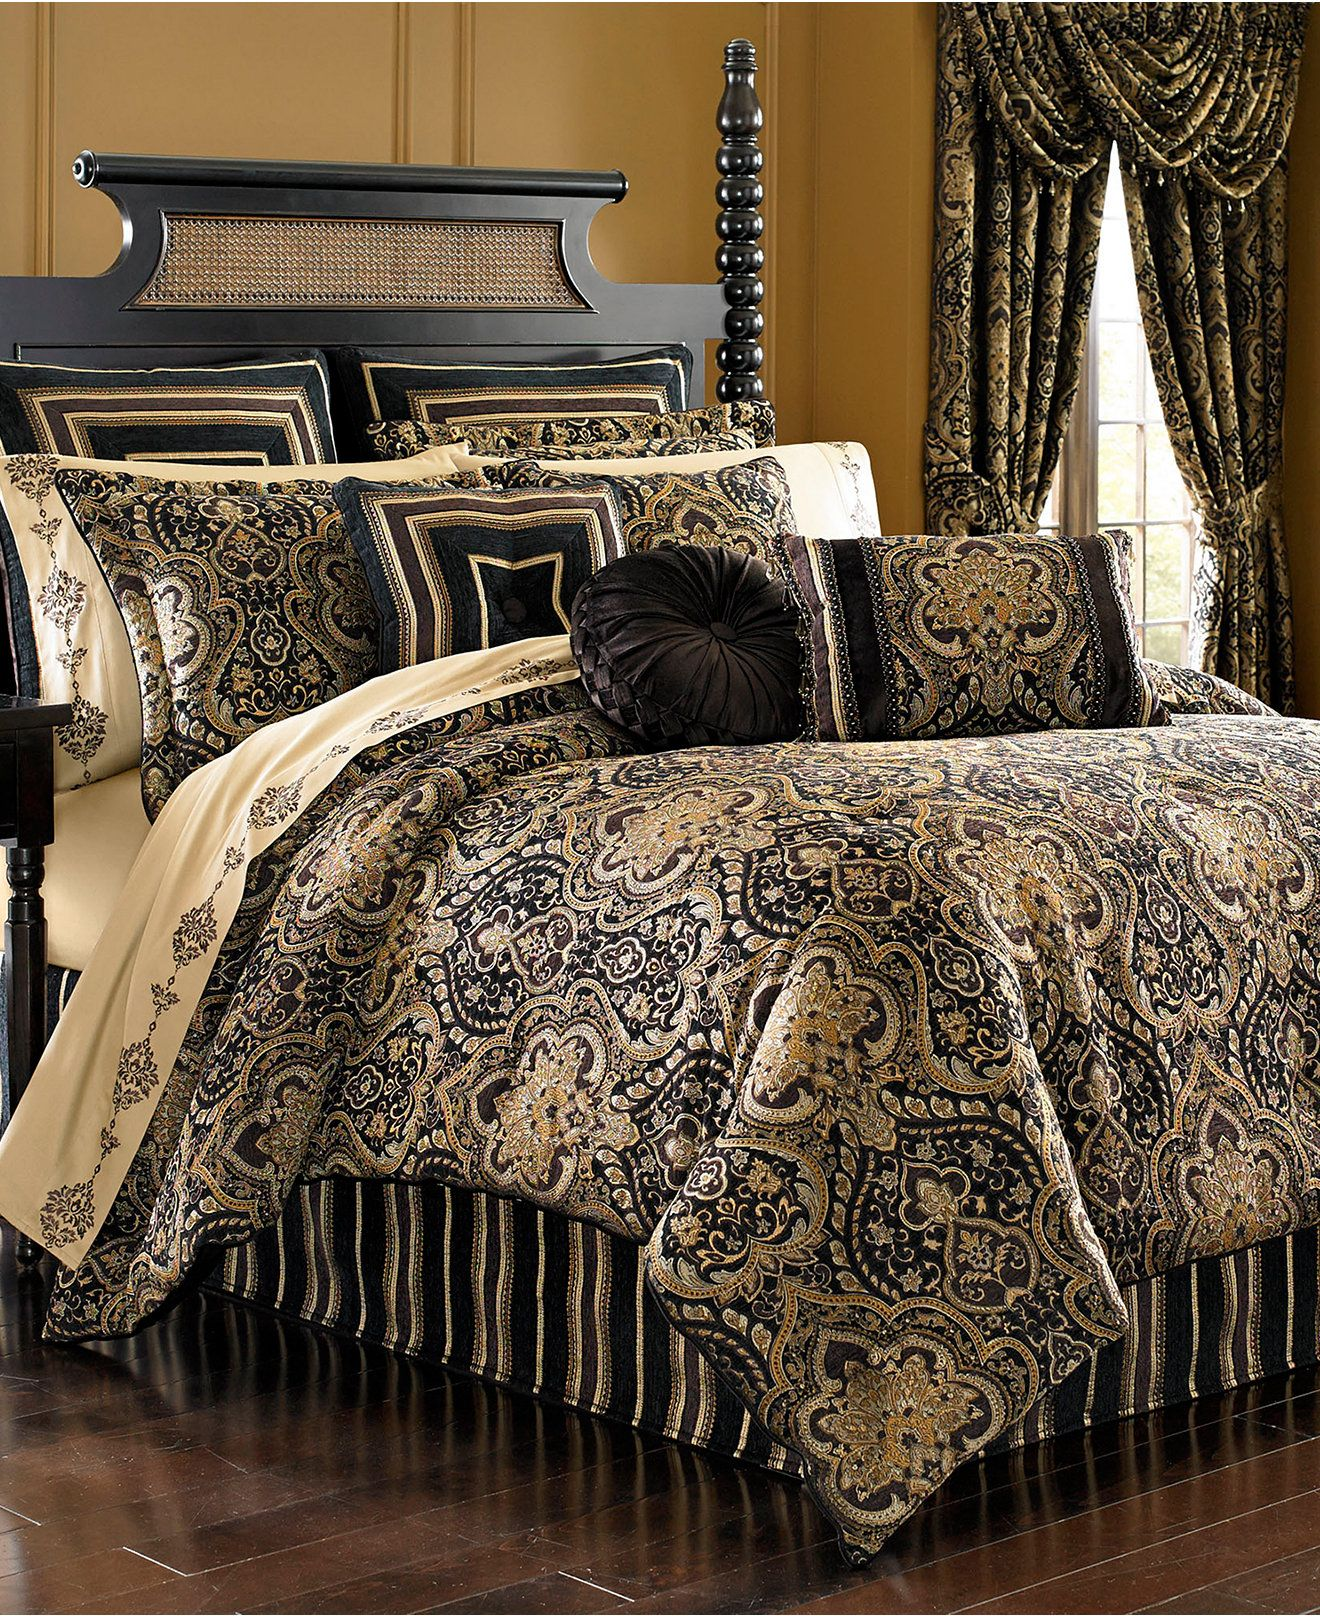 Bedroom Furniture Queens Ny j queen new york paramount bedding collection - bedding